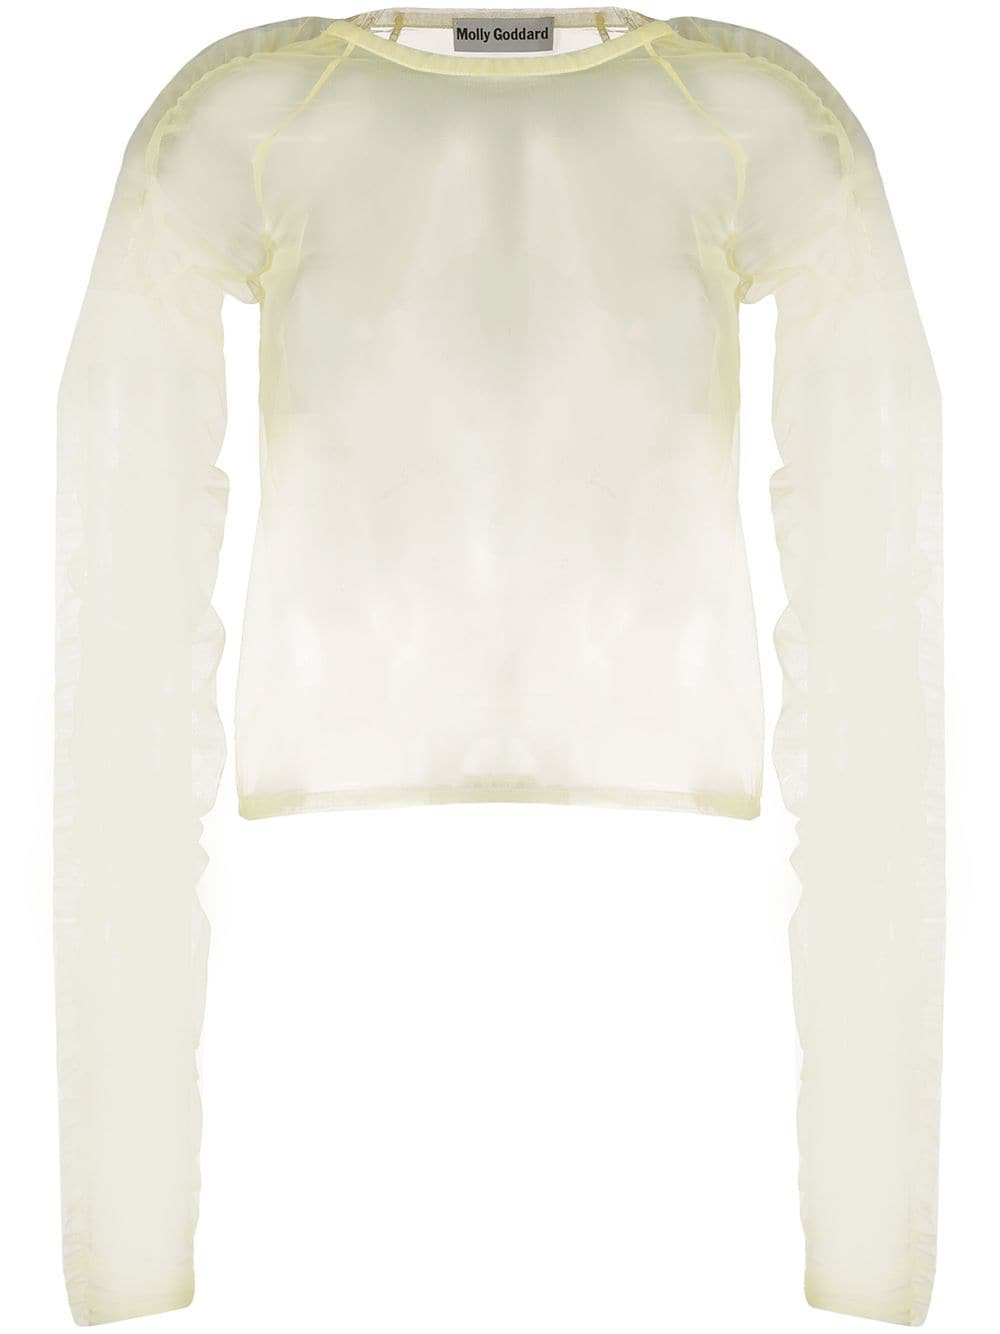 Molly Goddard ruched sleeve sheer blouse